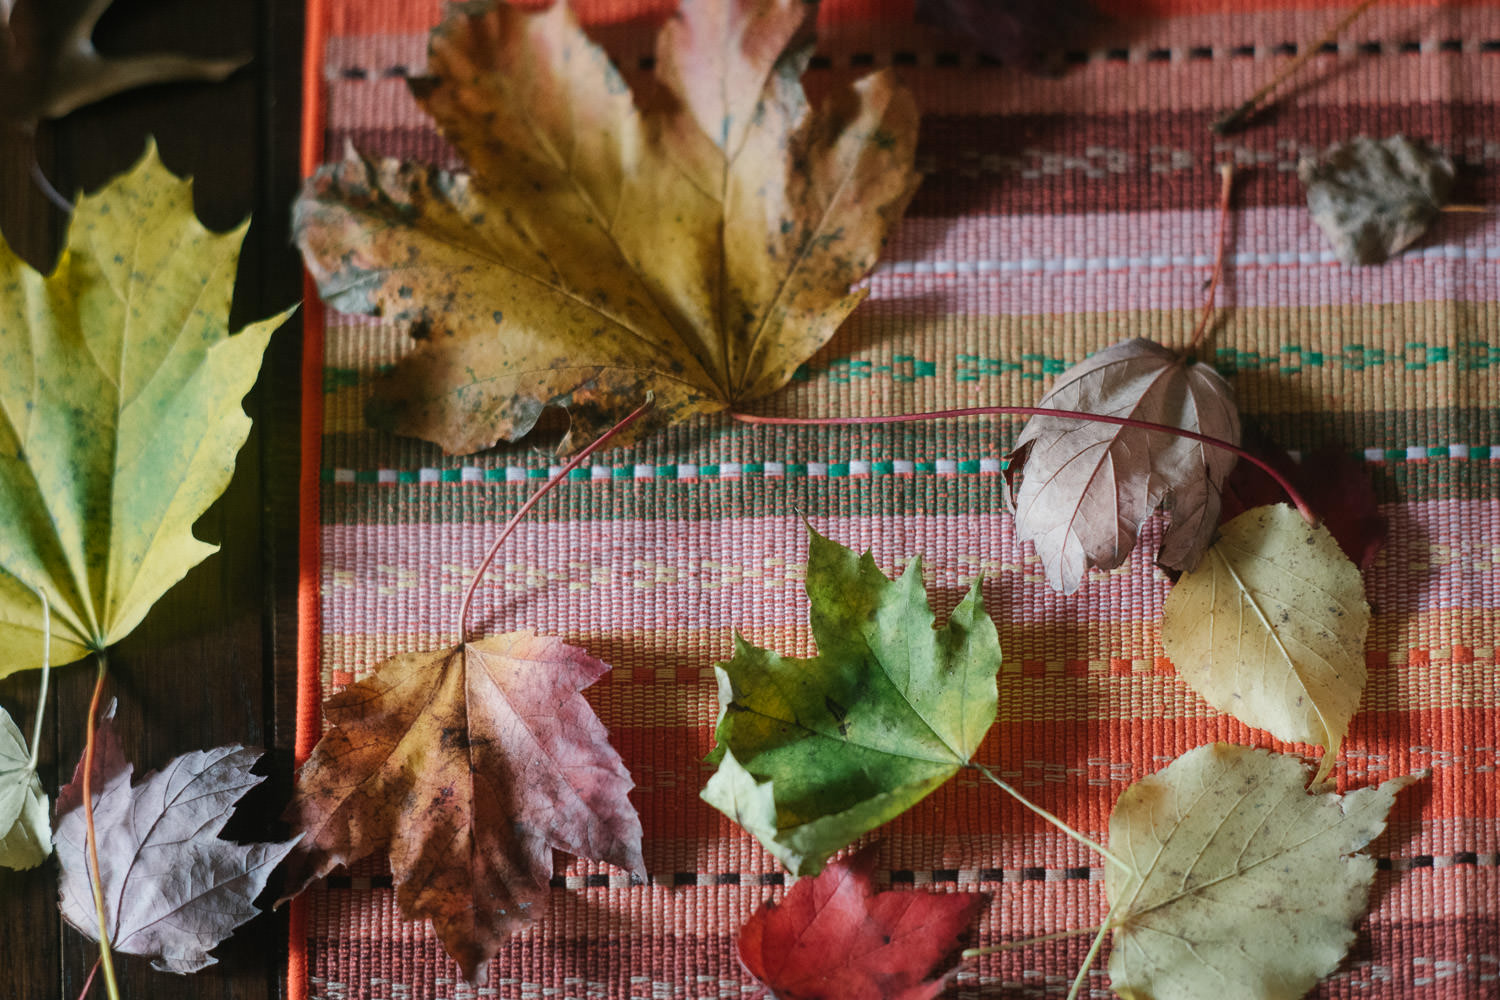 Collected fall leaves.